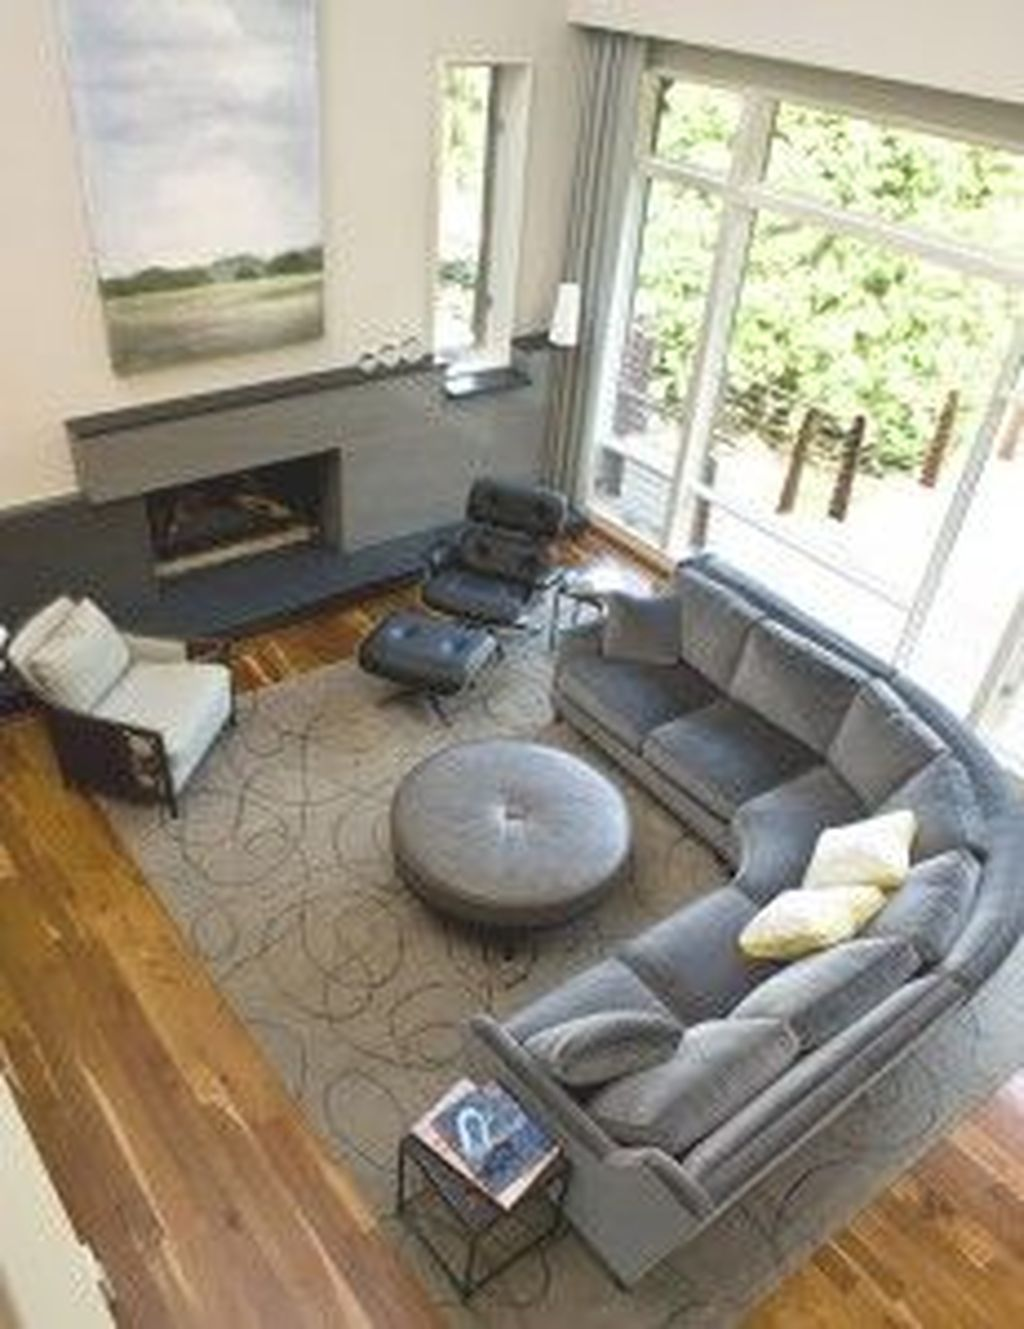 The Best Curved Sofa For Living Room Layout Ideas 06